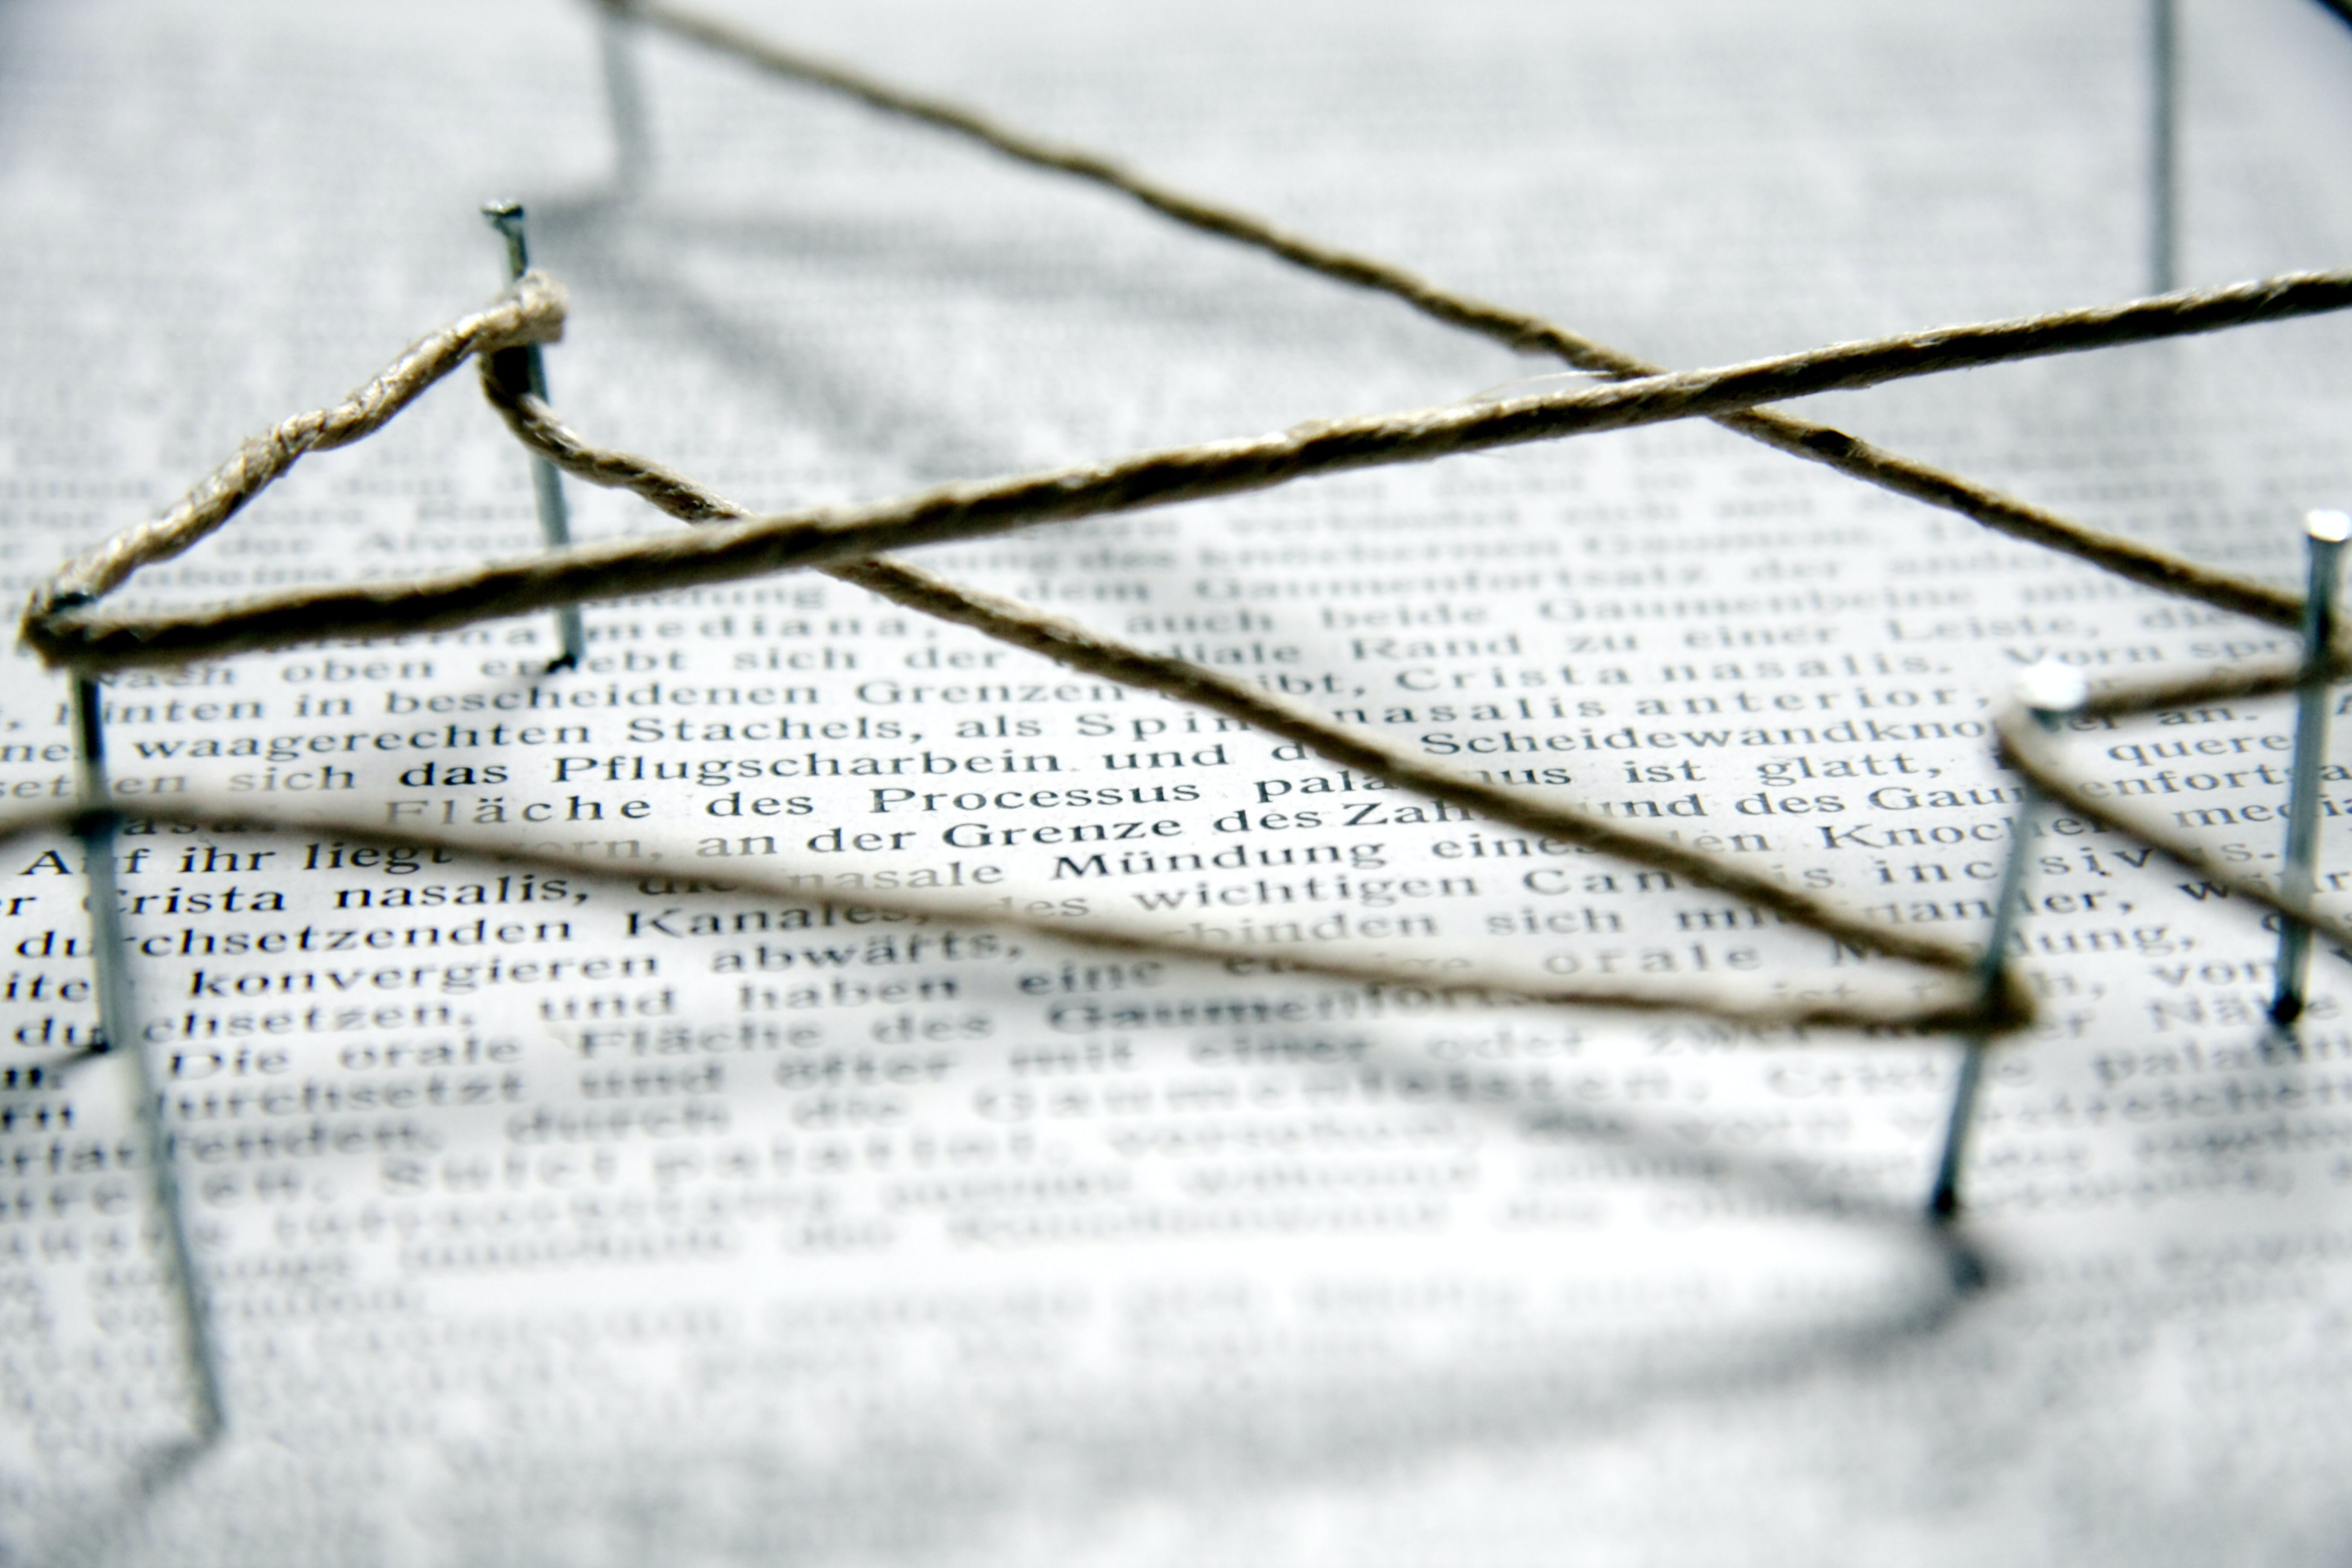 Nail pin - Metaphor: Academic networking Germany